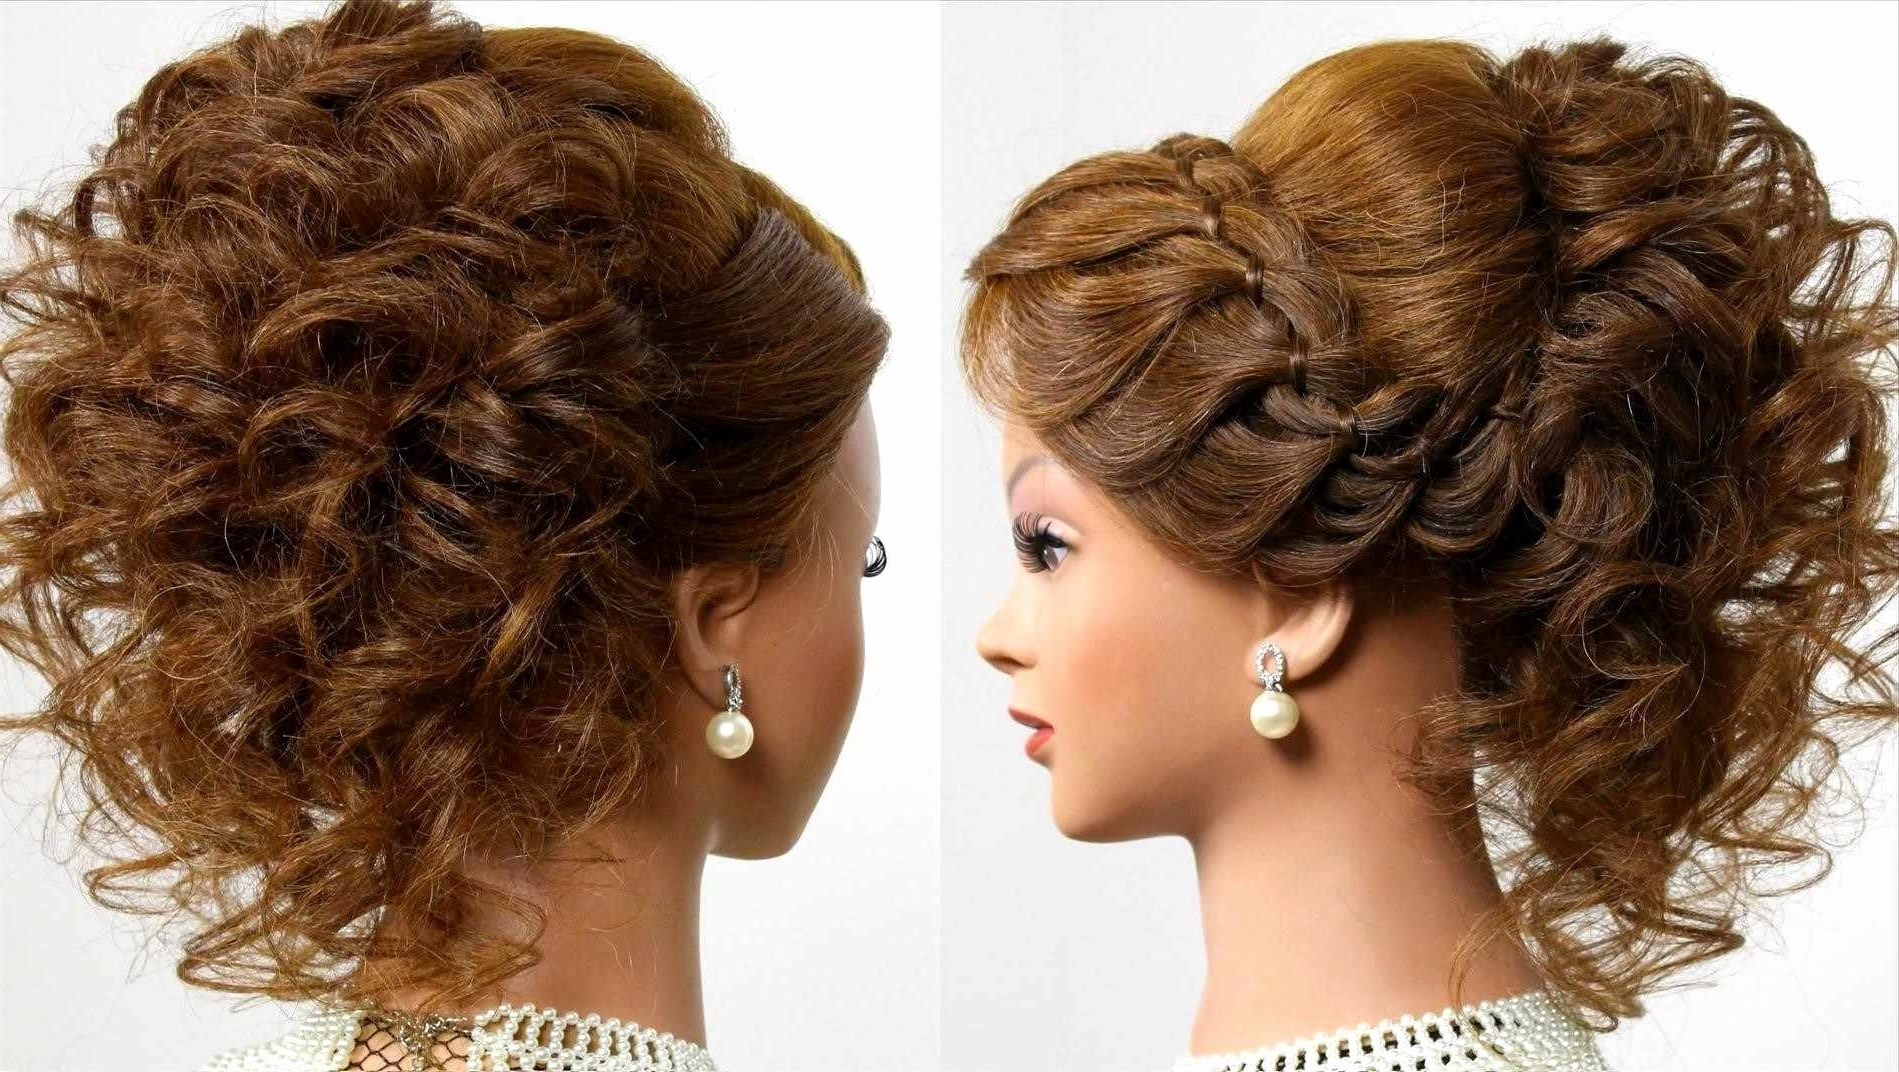 Hairstyles (View 11 of 15)